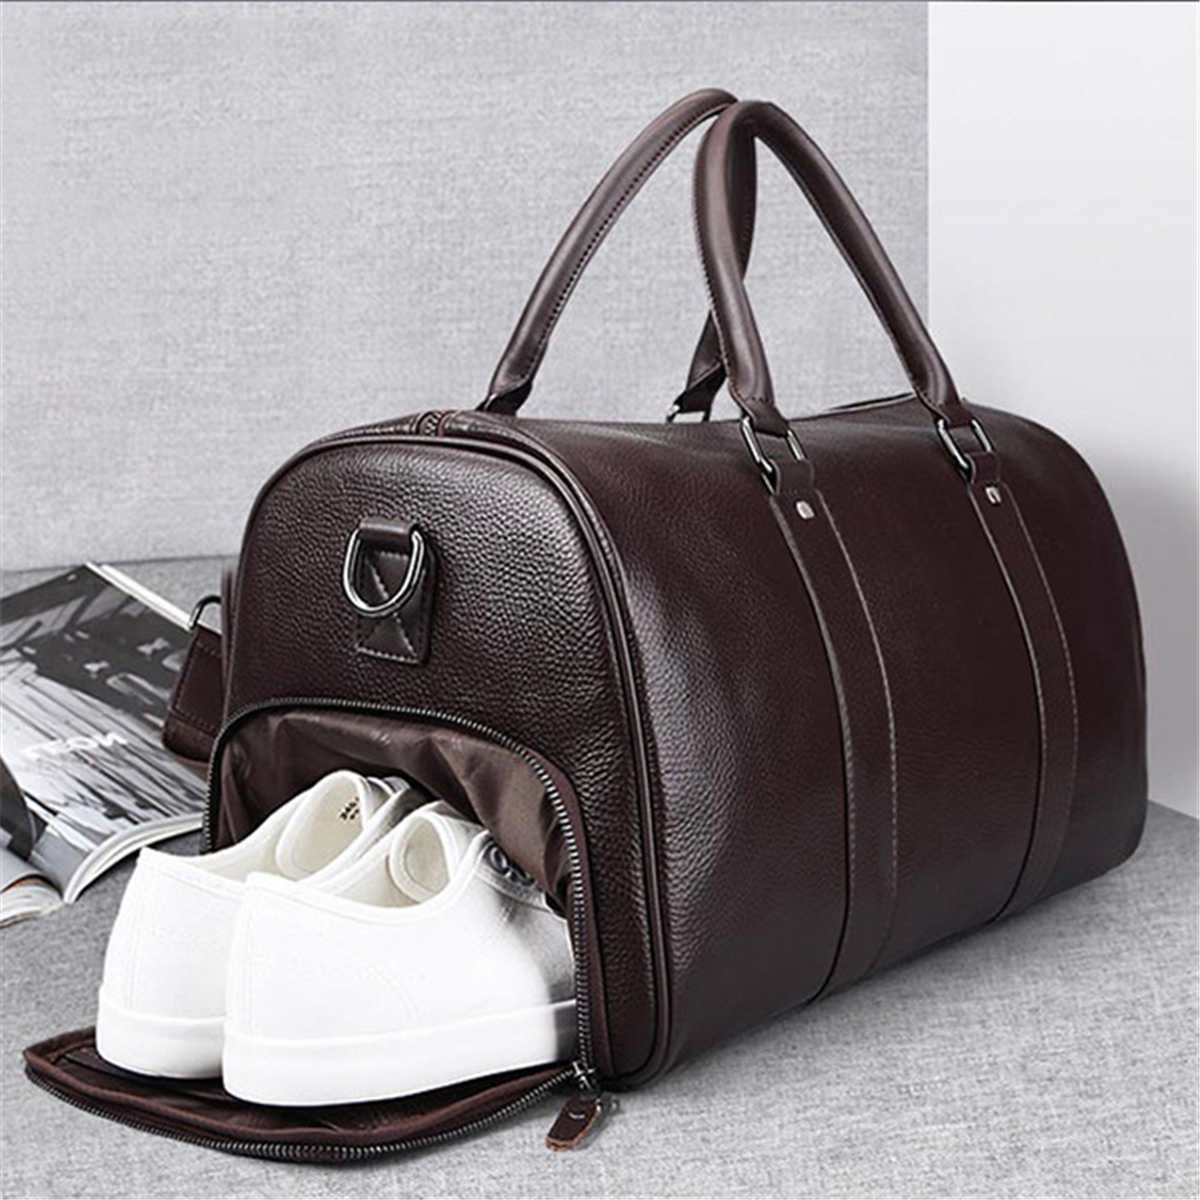 Unisex Travel Bag Women Men PU Leather Handbag Crossbody Bag PU Large Capacity Luggage Shoulder Bag Couples Duffel Totes Package